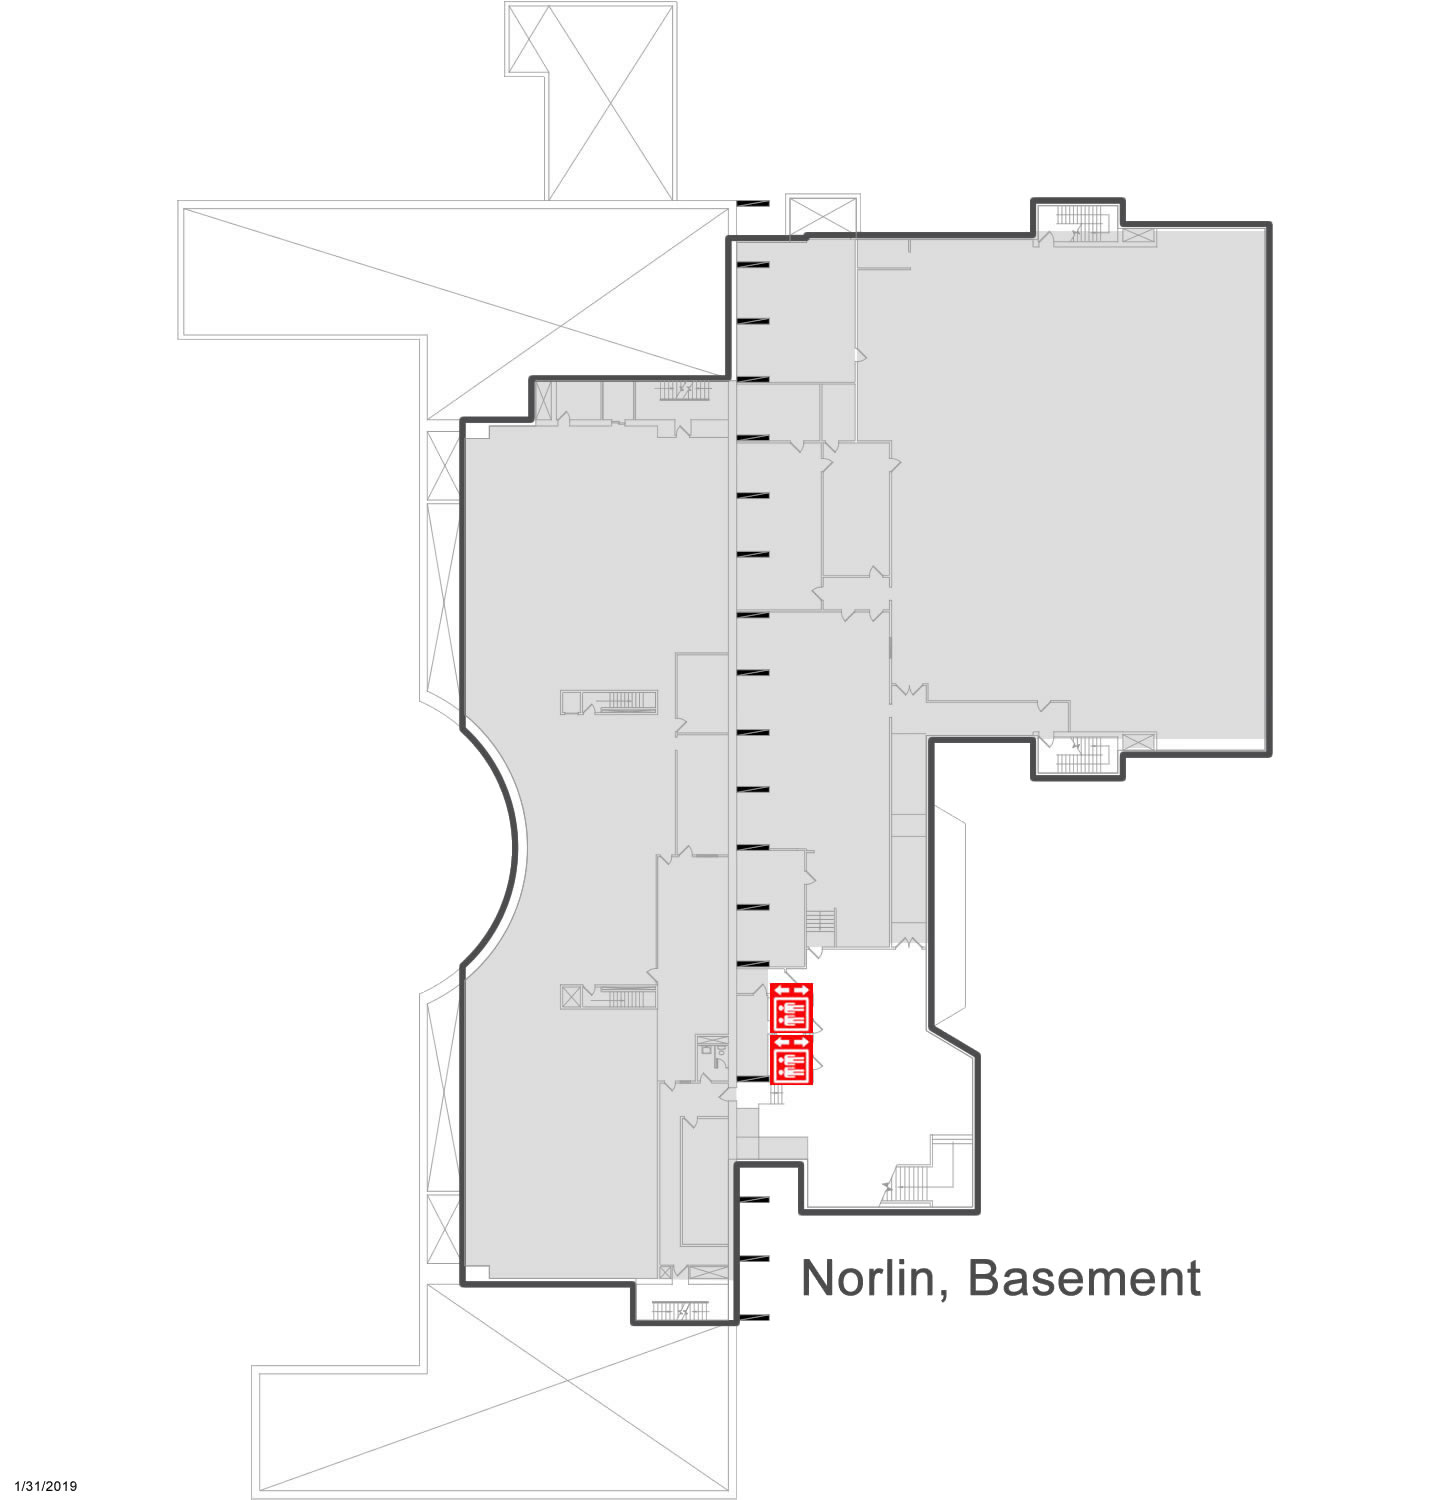 Norlin Basement Map